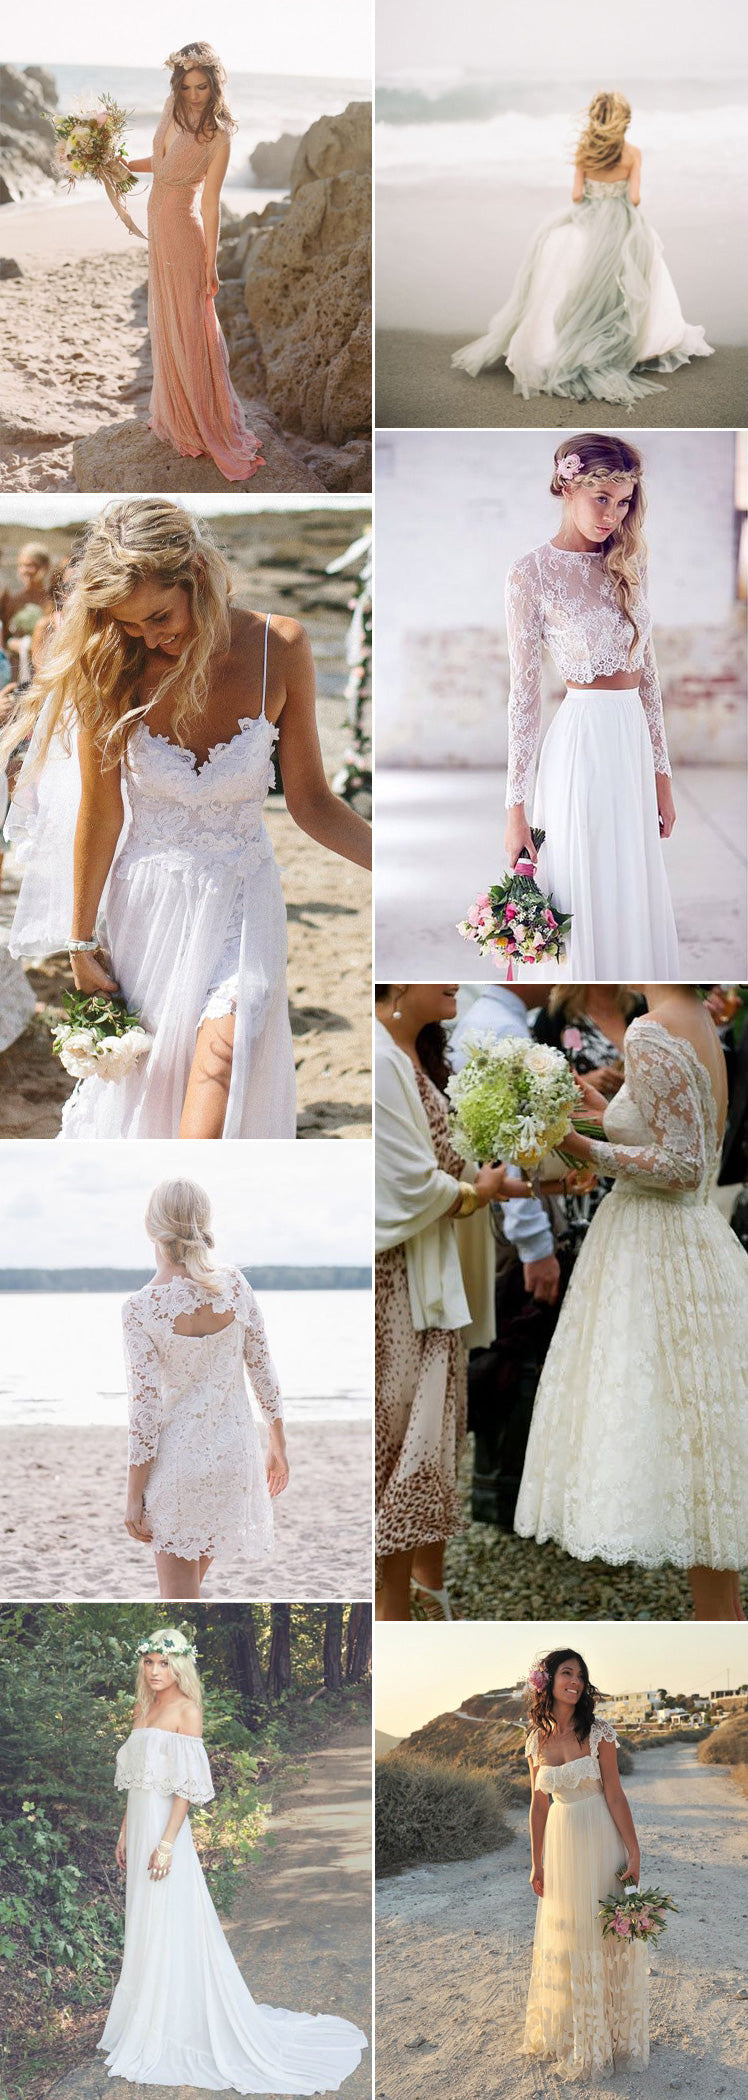 beach wedding dresses we are sure you will adore